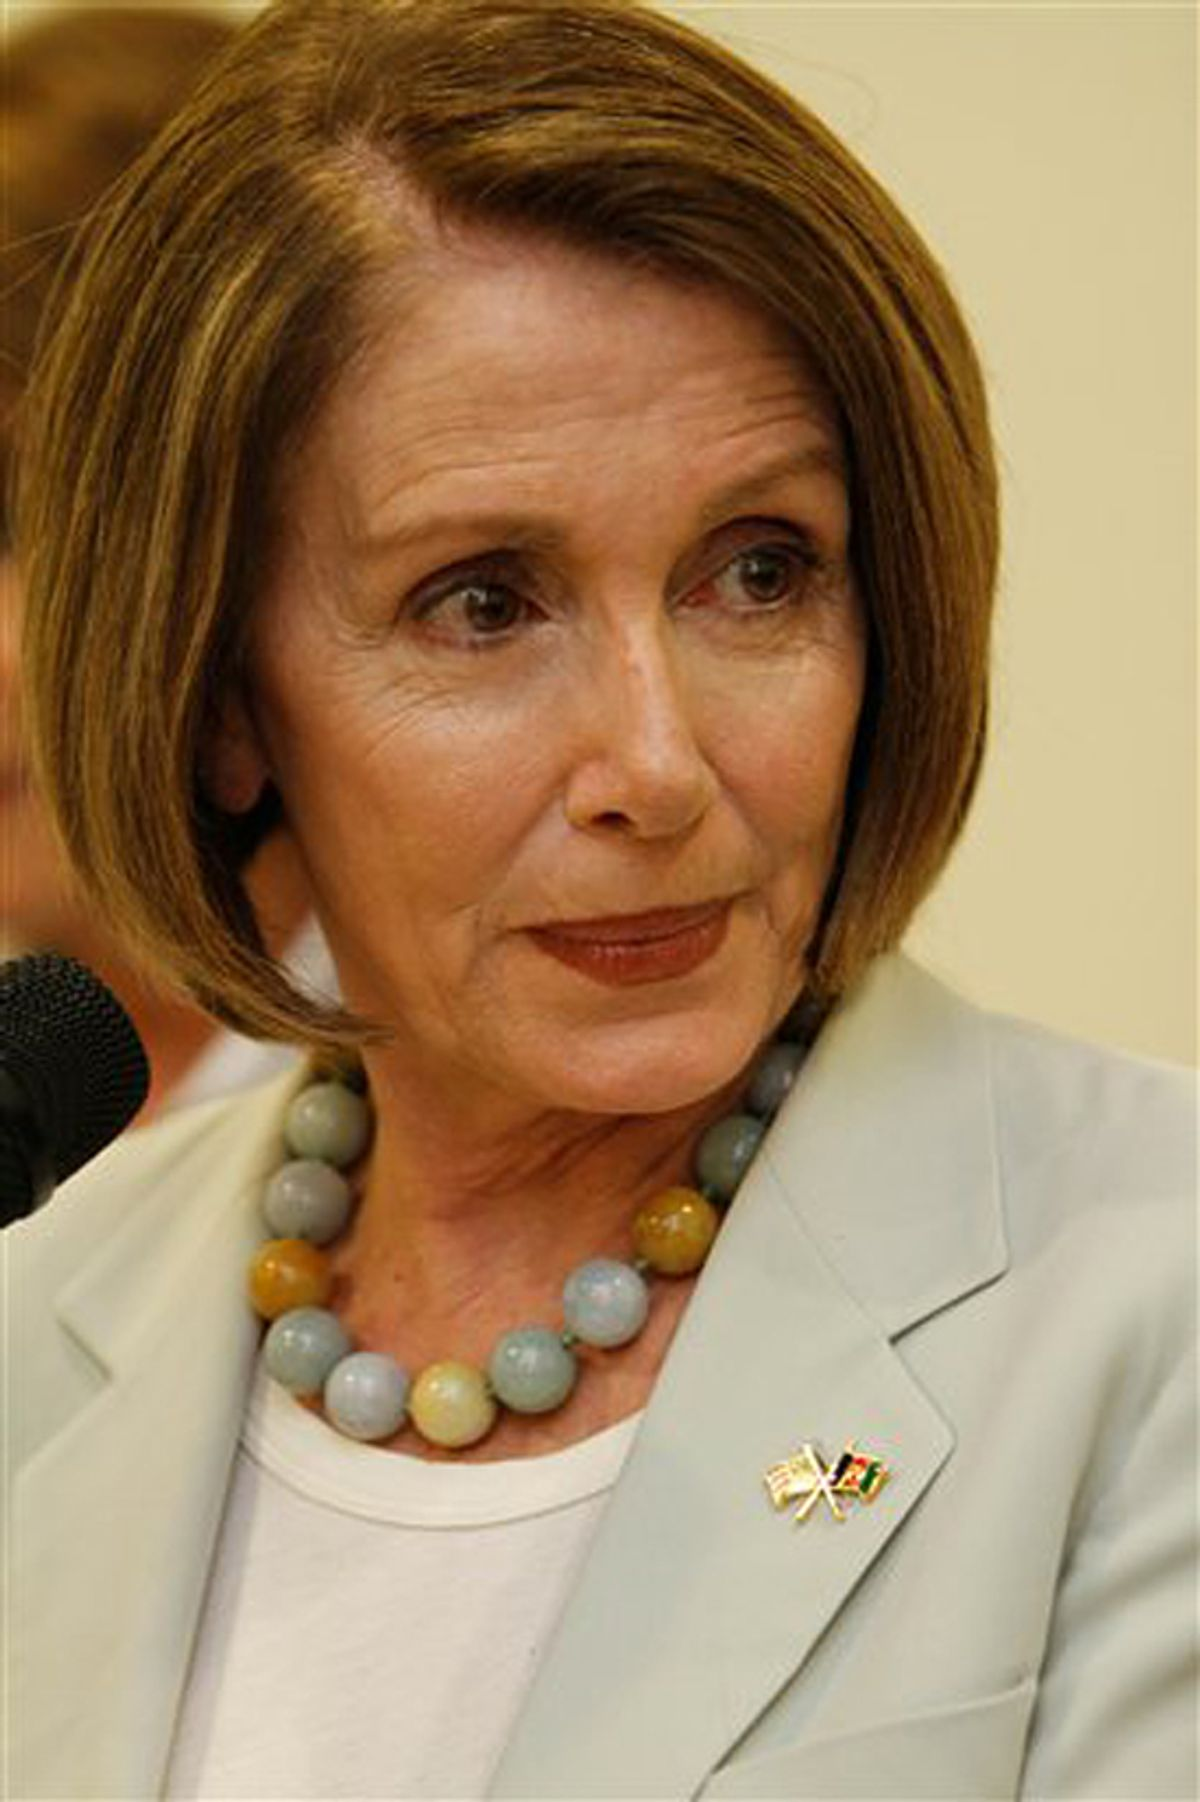 Speaker of the US House of Representatives Nancy Pelosi (D-CA), speaks during a press conference in Kabul. Afghanistan, Sunday, May 9, 2010. She is visiting Afghanistan with colleagues Reps. Susan Davis, D-Calif.; Niki Tsongas, D-Mass.; Donna Edwards, D-Md., and Madeline Bordallo, D-Guam. They were to meet with Afghan women who counsel victims of sexual assault, female Marines who engage with Afghan civilians in the field and Afghan women who have received vocational training. (AP Photo/Dar Yasin) (Dar Yasin)